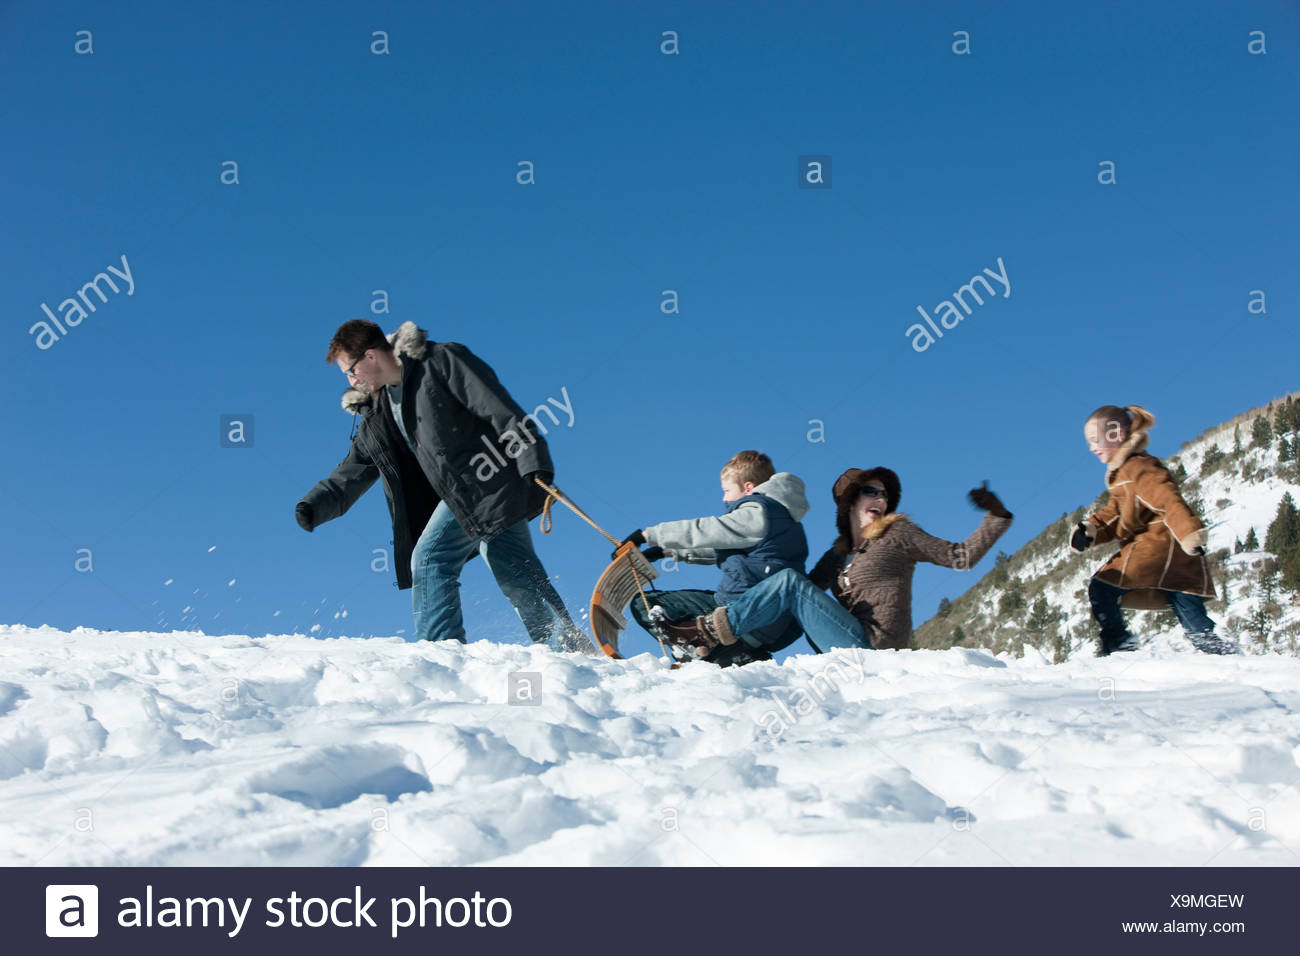 USA, Utah, Big Cottonwood Canyon, family tobogganing in mountains - Stock Image